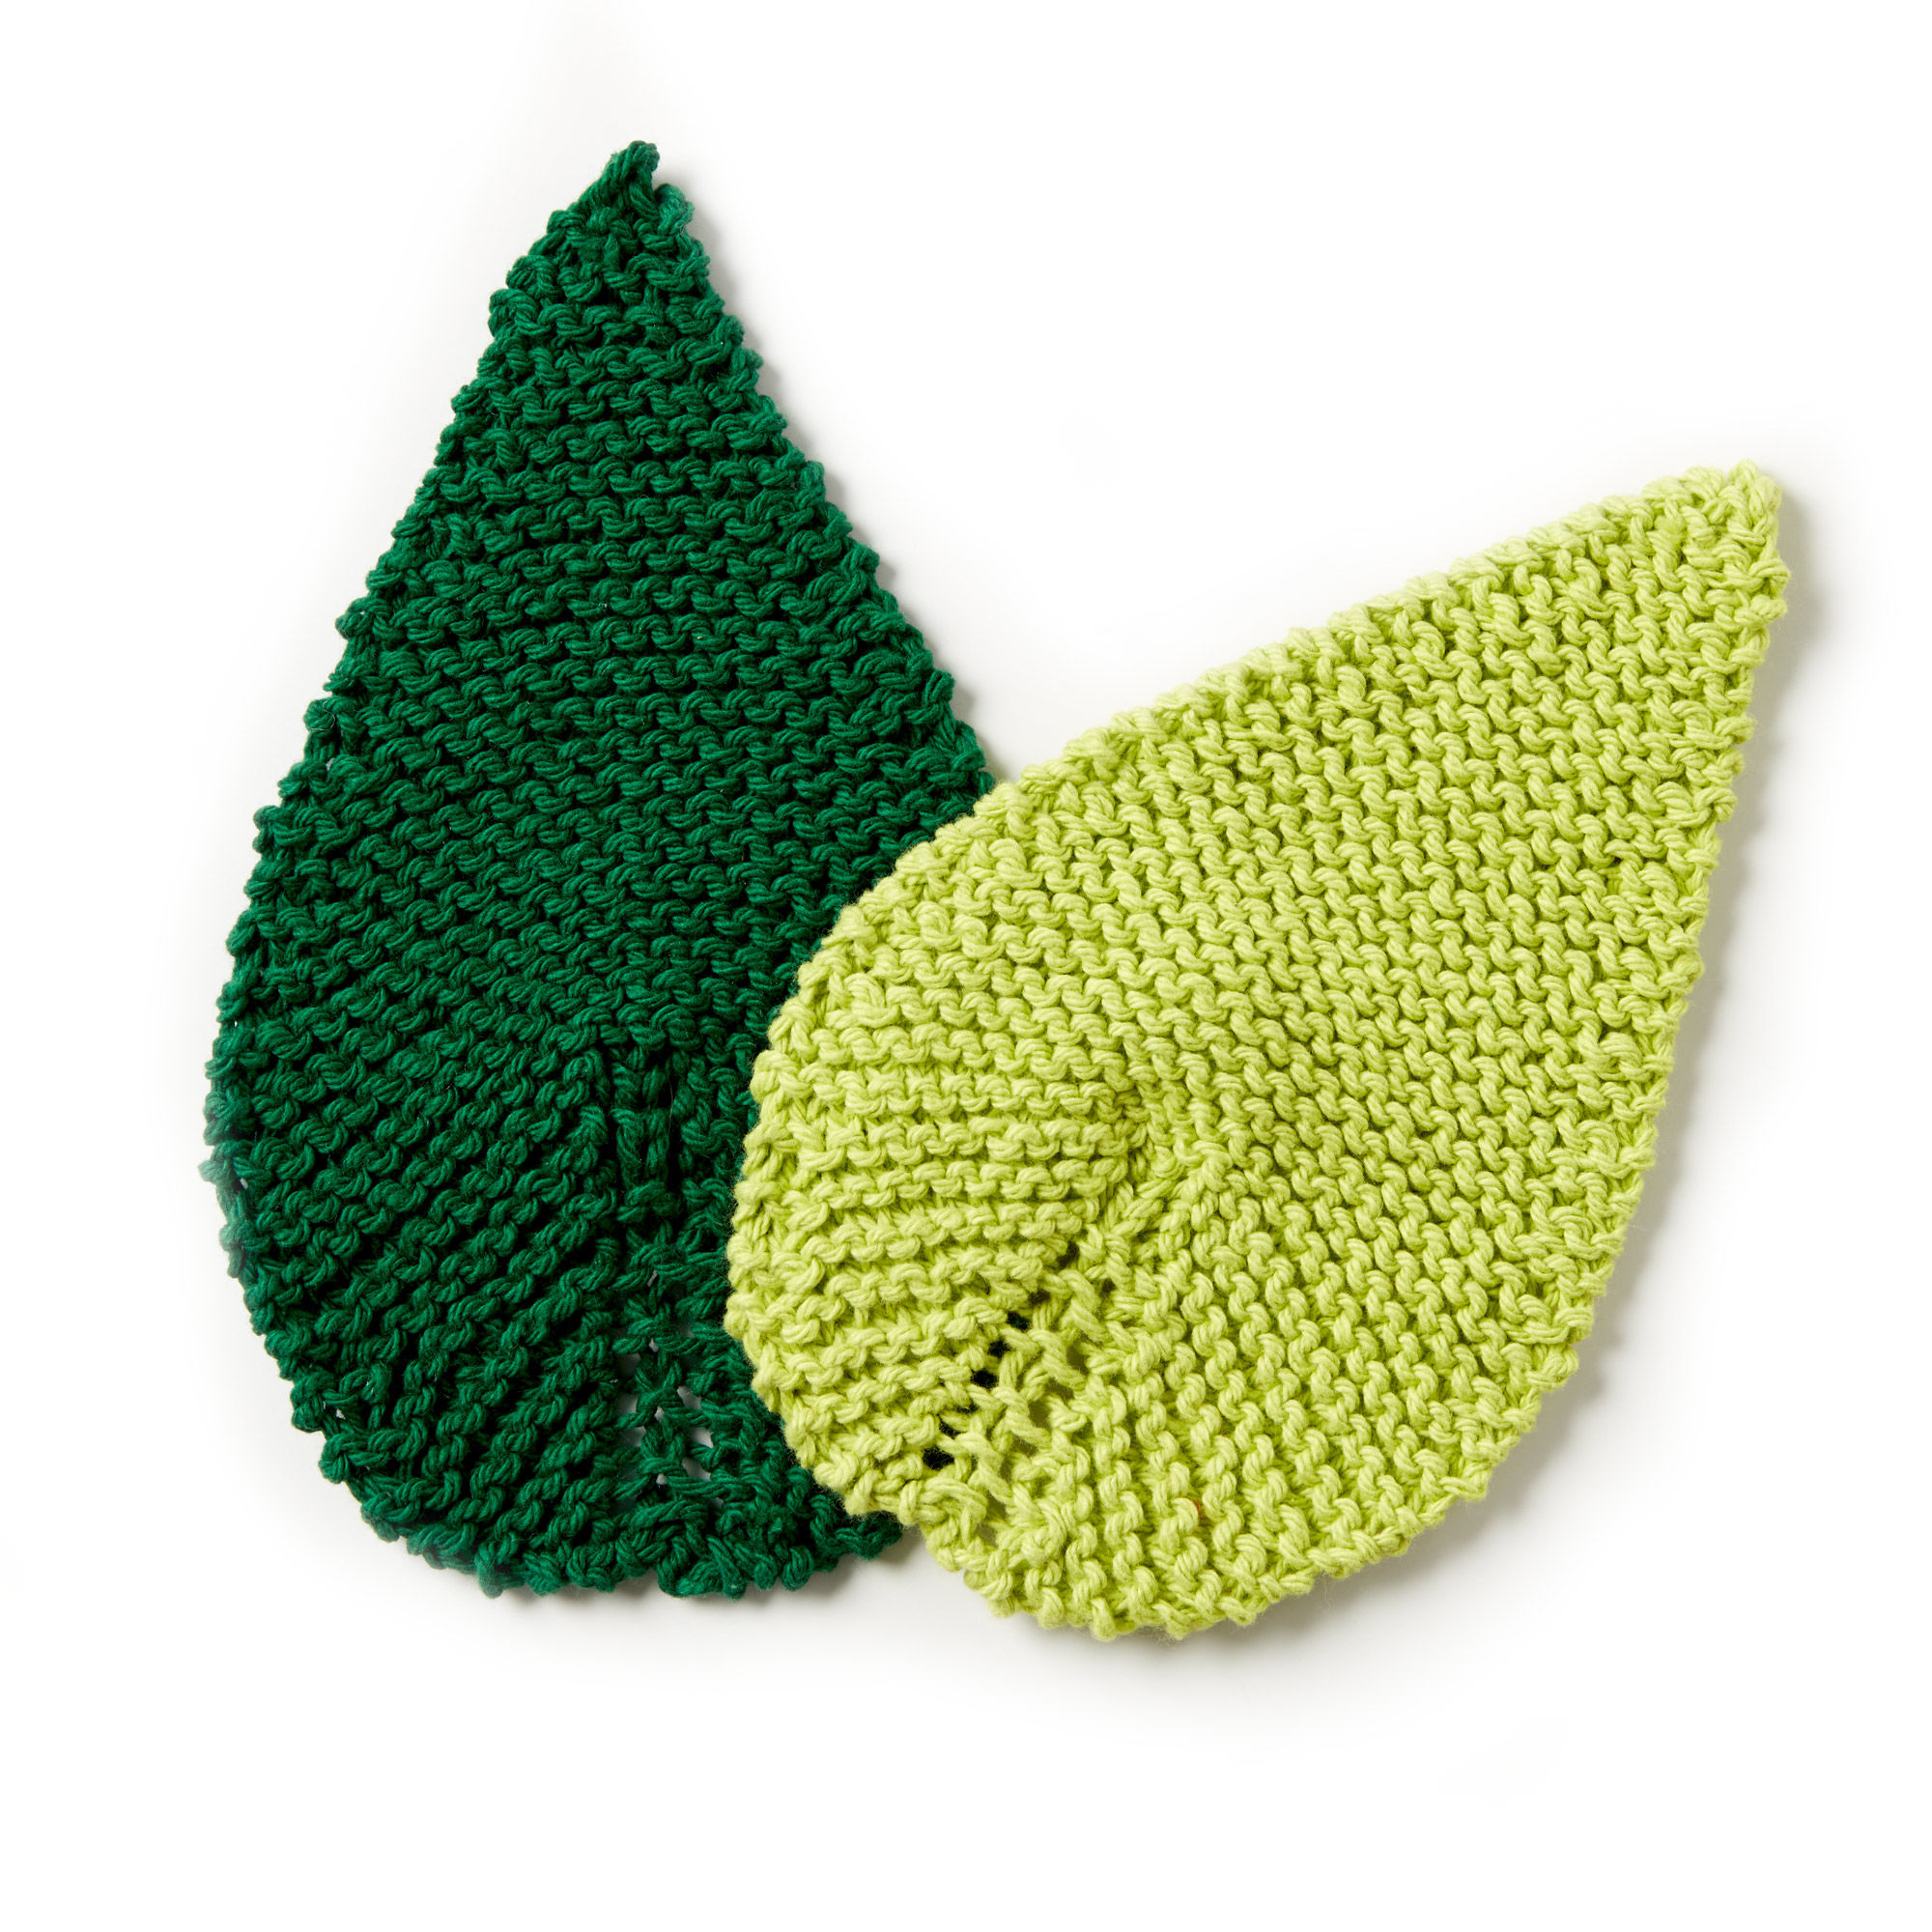 Free Knitting Pattern For A Be-Leaf It Mug Rug